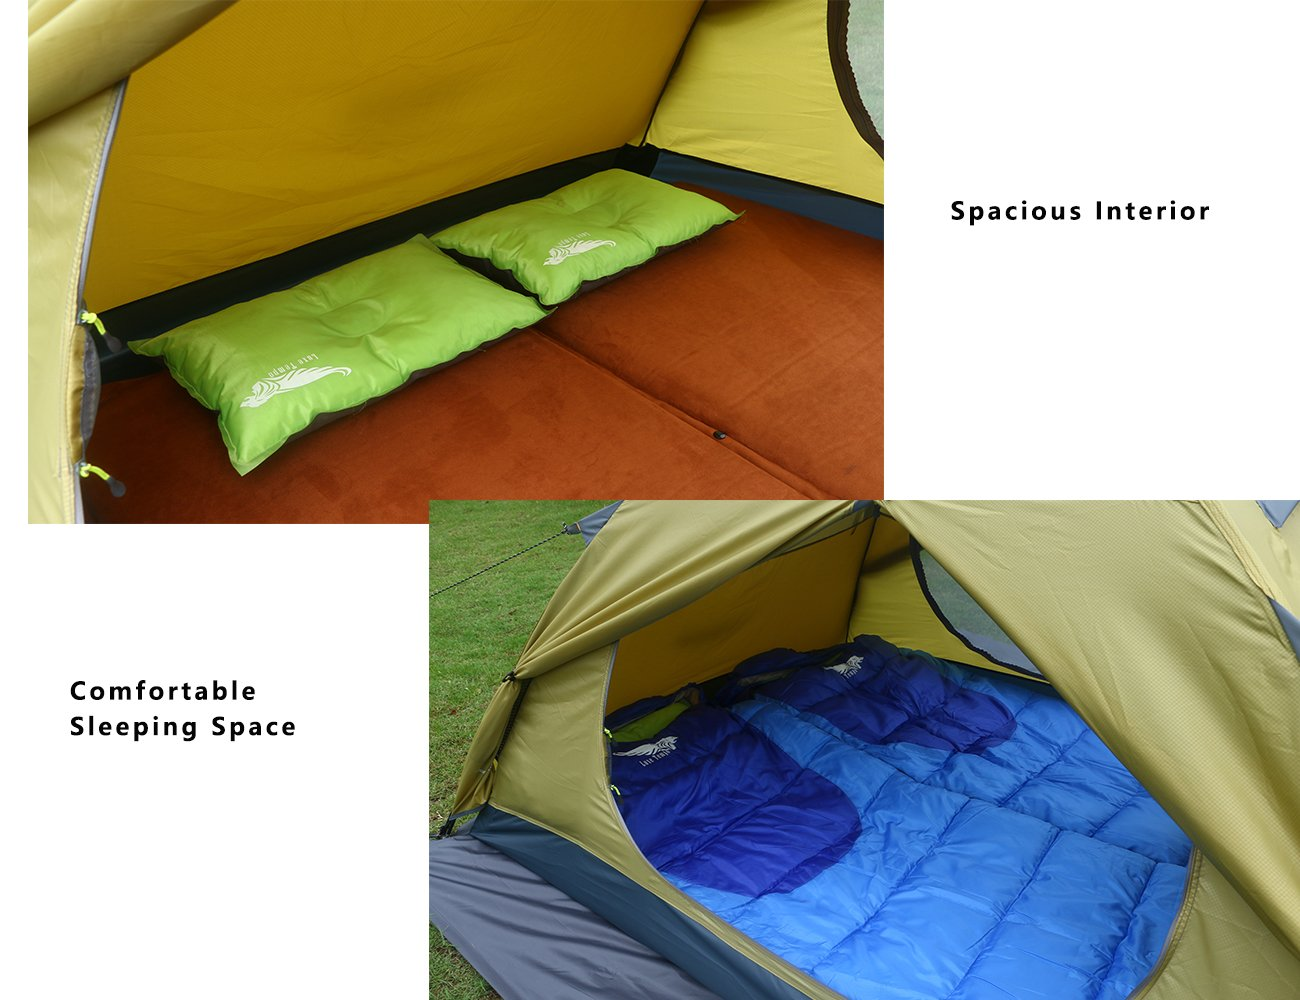 Luxe Tempo Enhanced 2 Person Tents for Camping 3-4 Season Backpacking Tents with Free Hammock 2 Doors 2 Vestibules